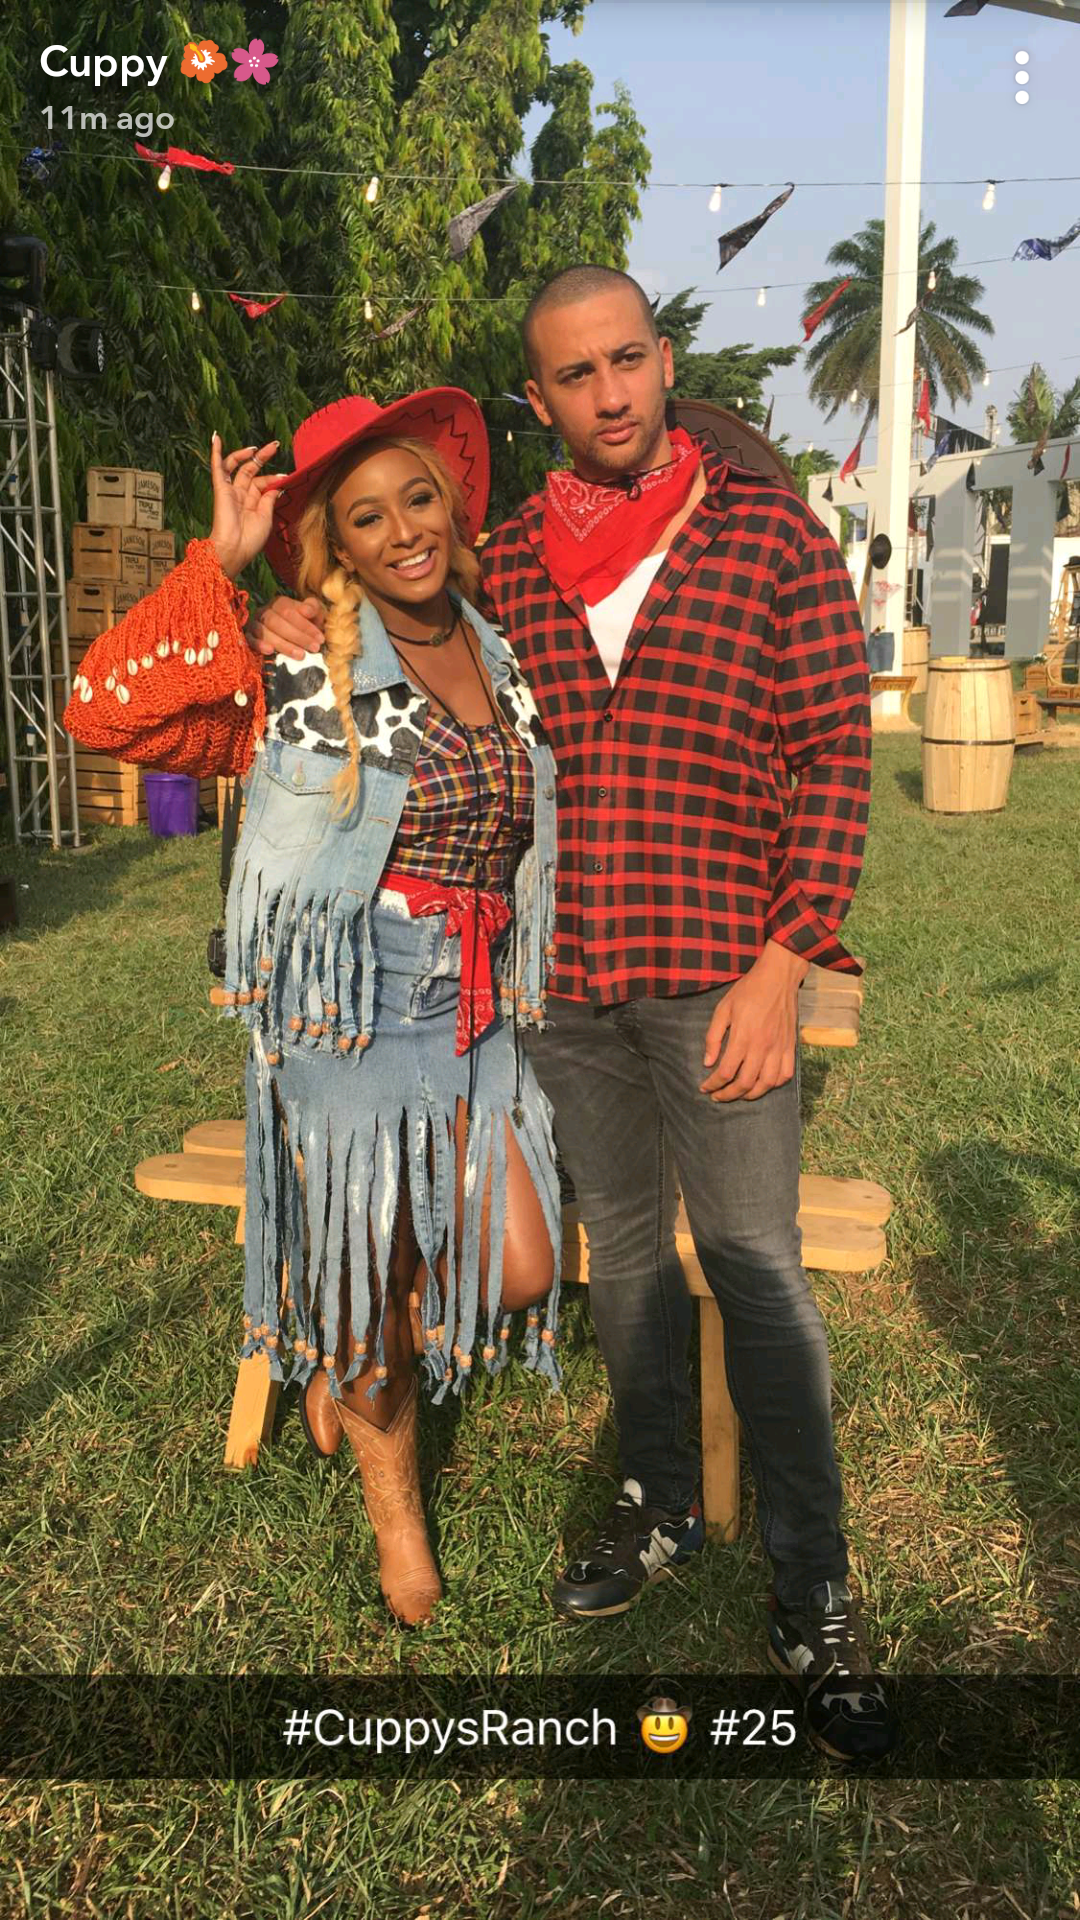 Photos: Billionaire daughter, DJ Cuppy throws a Ranch themed 25th birthday party at her father